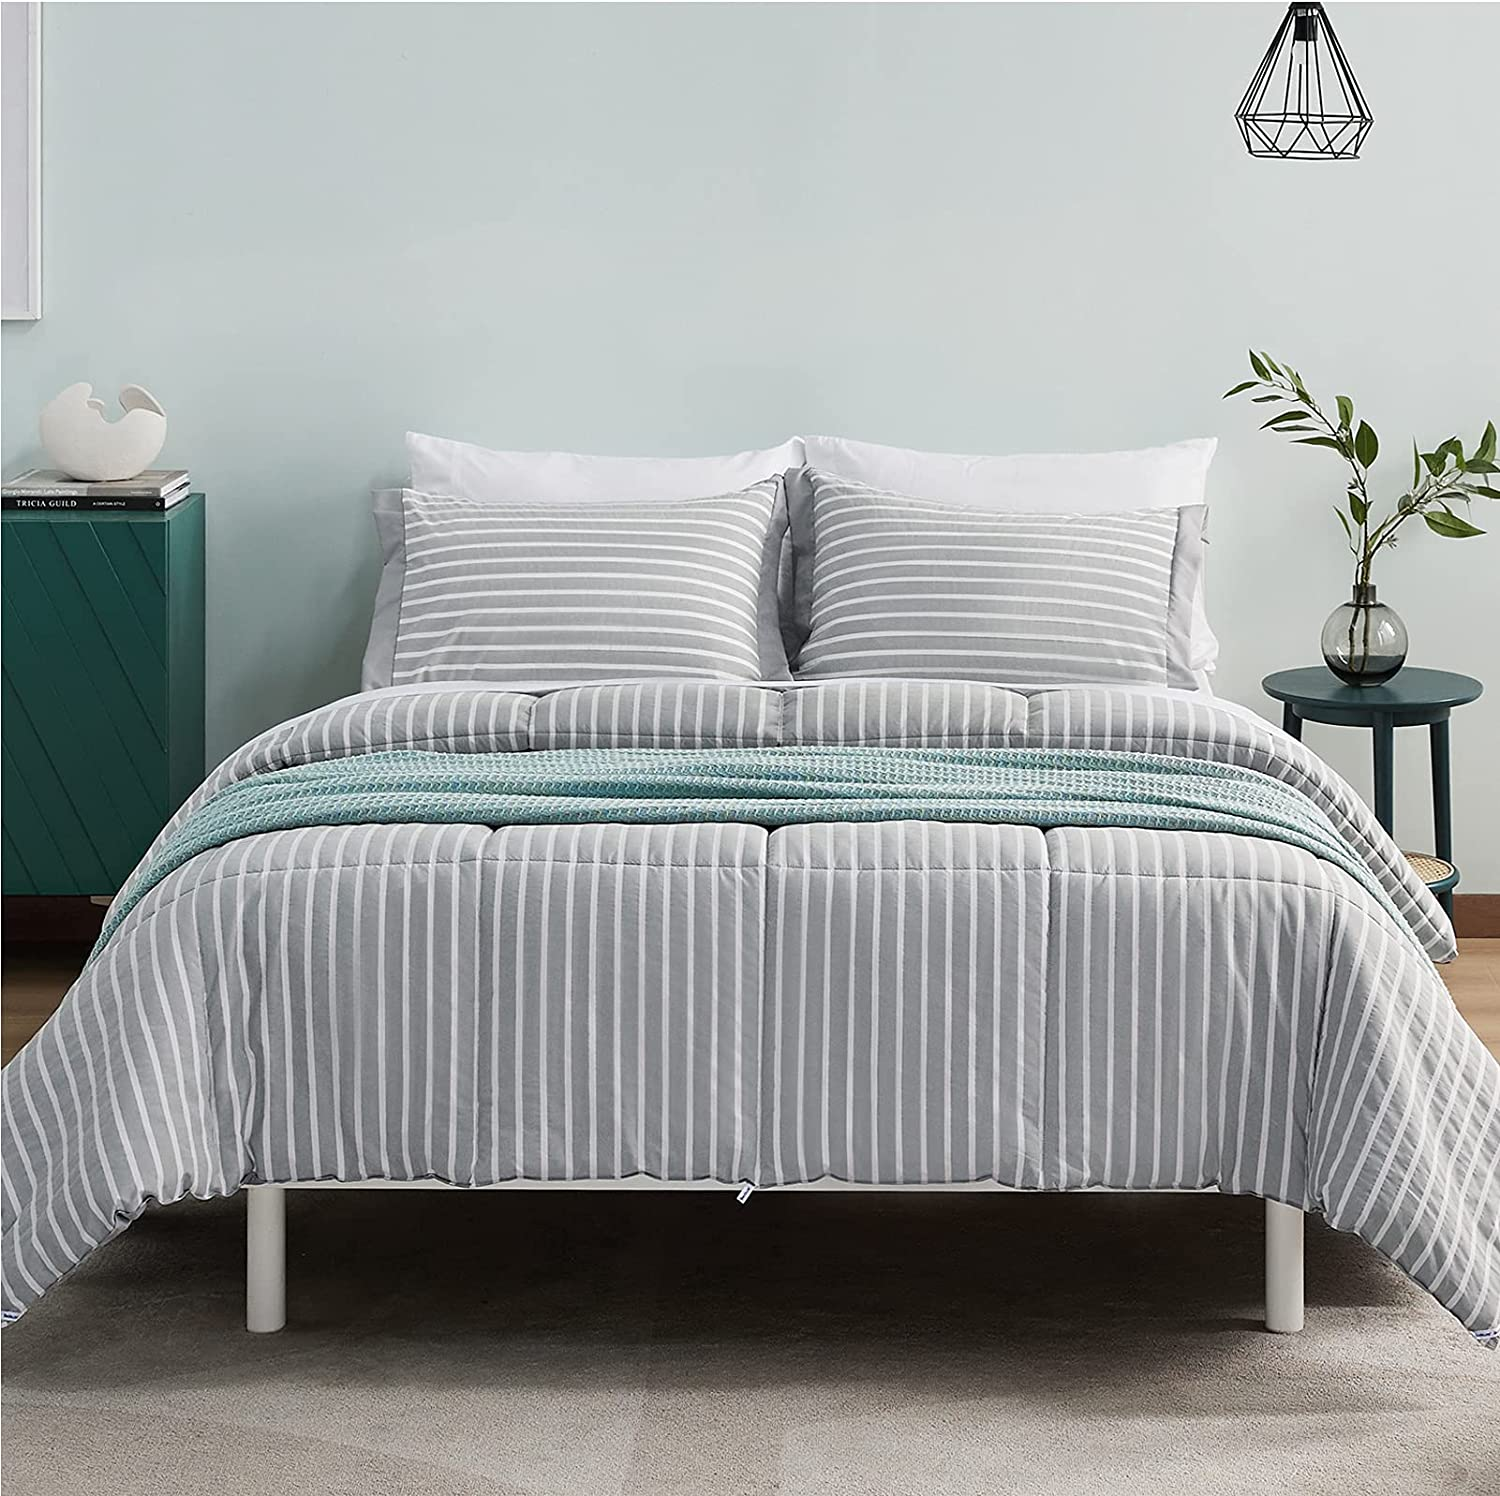 Bedsure King Size Comforter Set - Percale Stripes Down Alternative Grey Comforter Sets Box Stitching Gray Duvet Insert, All Season Bed Set with 2 Pillow Shams (King, 102x90'', 3 Pieces)